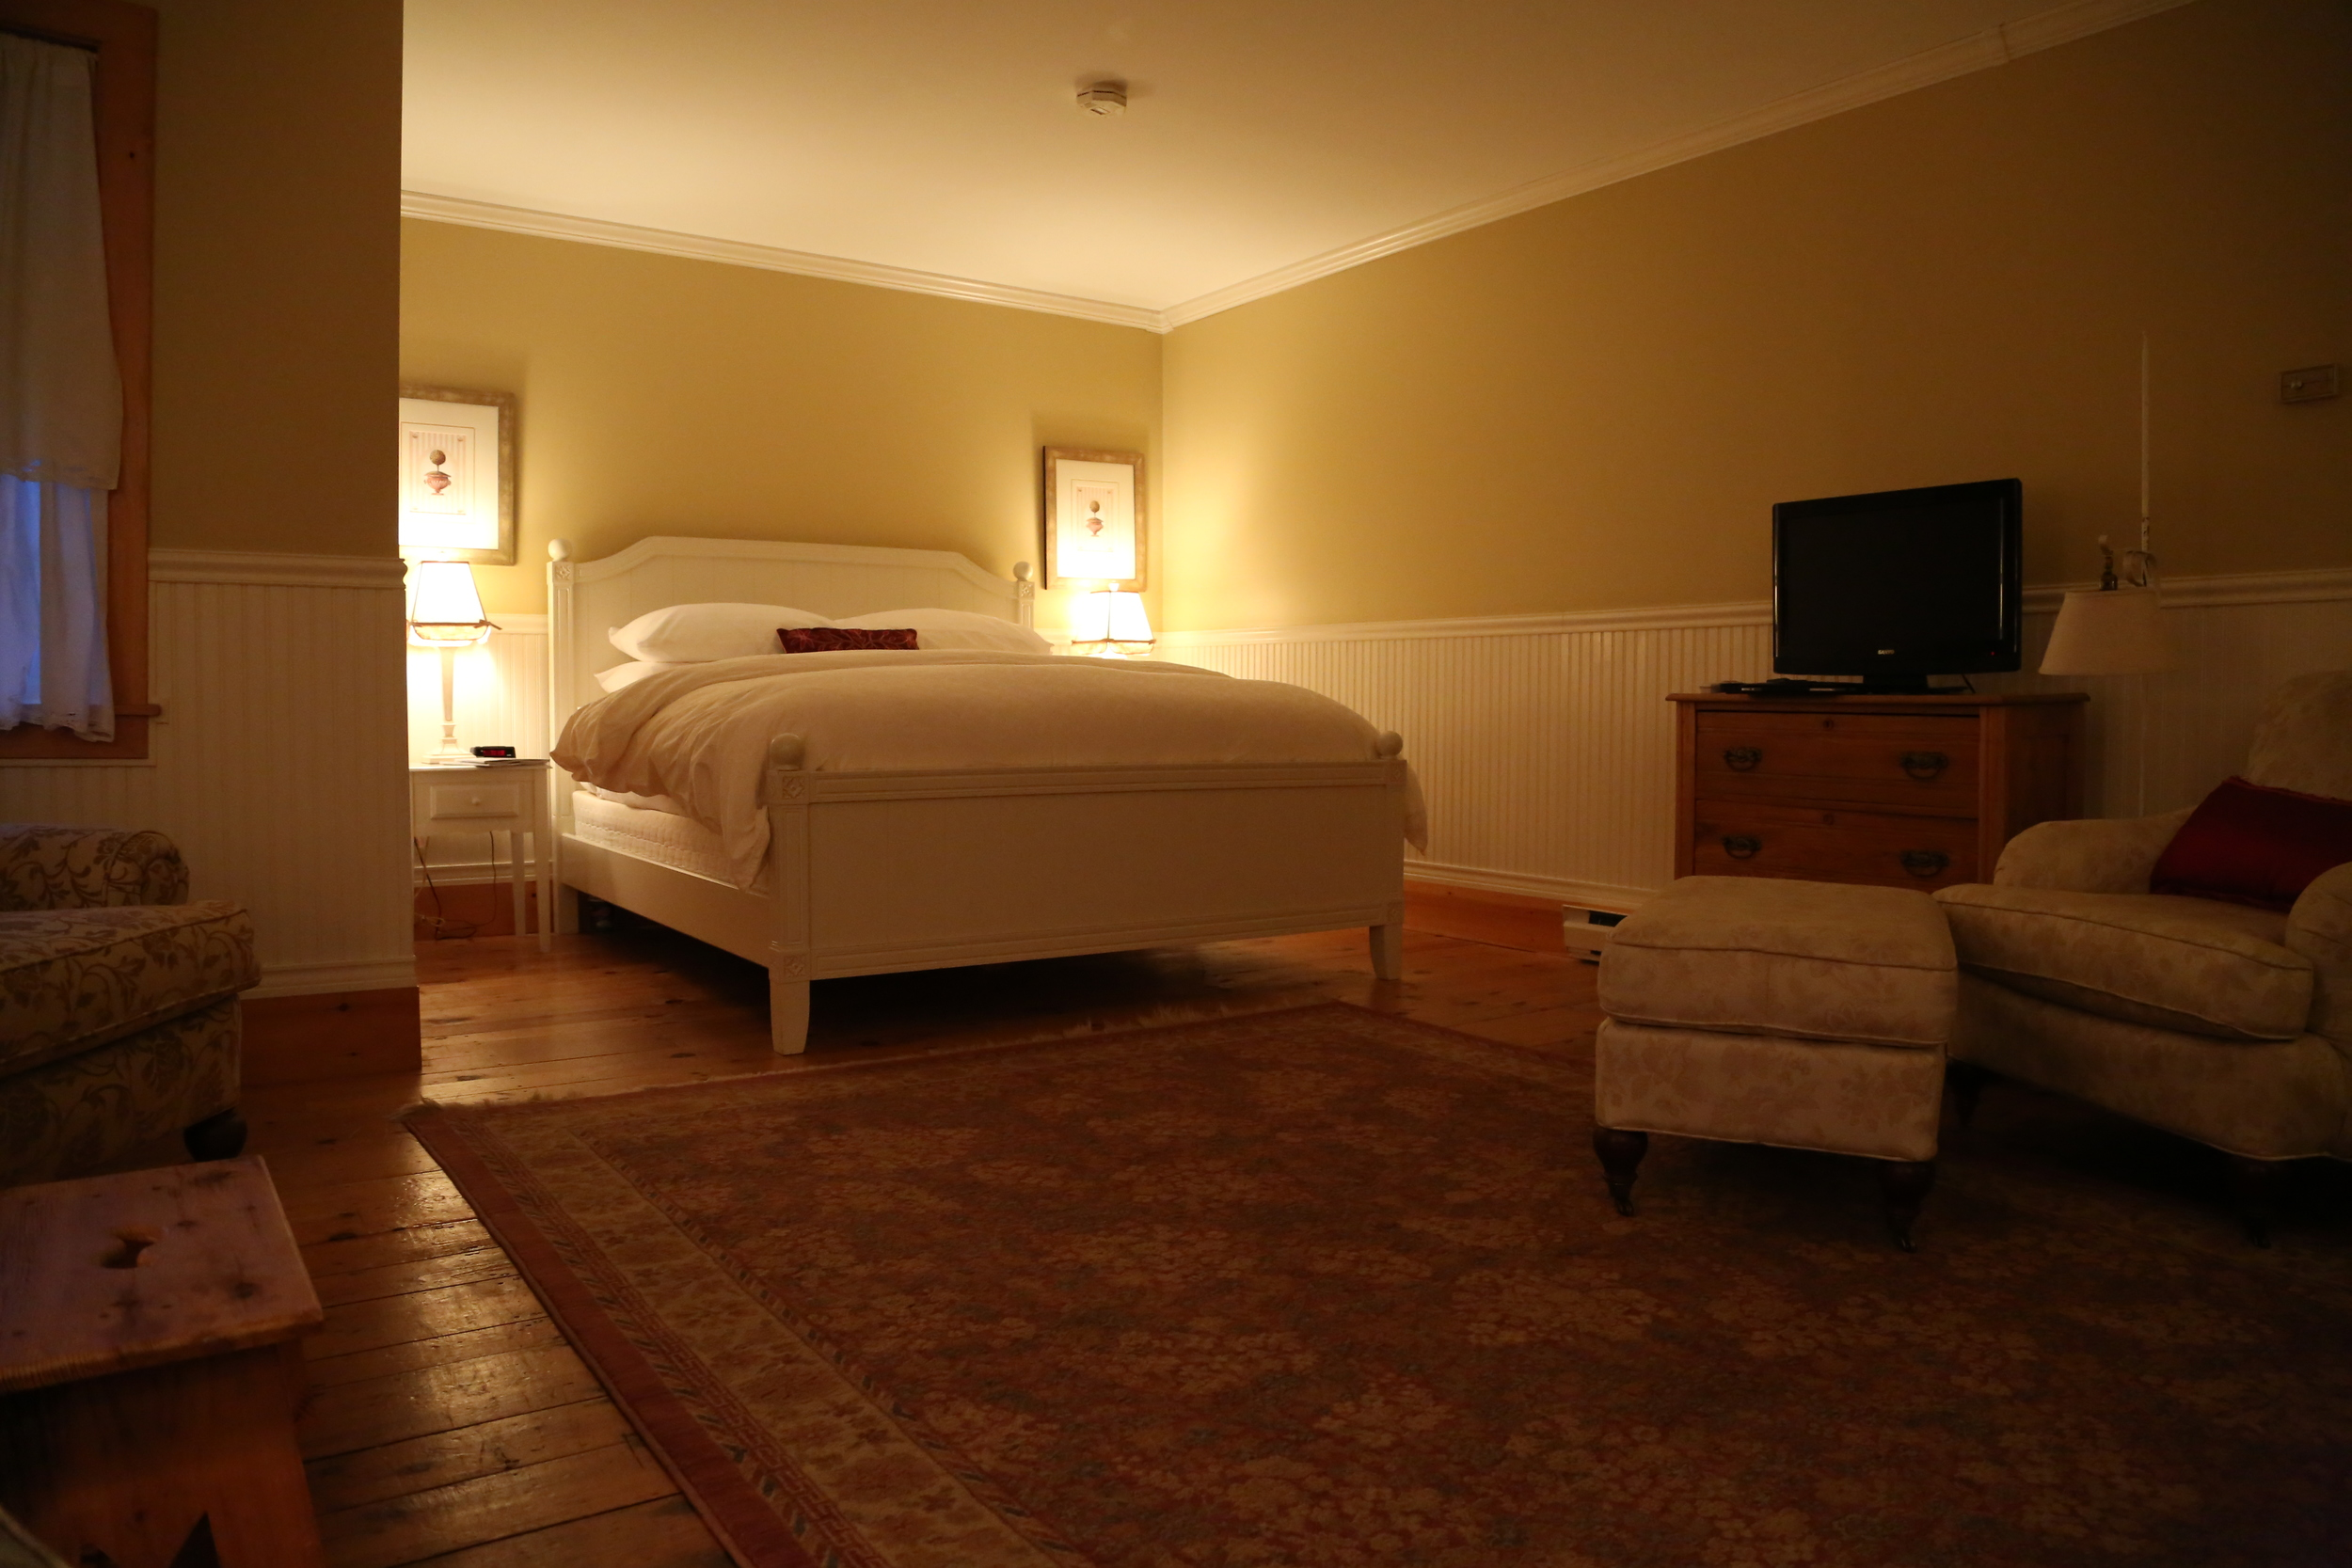 our room - there was a gas wood stove to the left